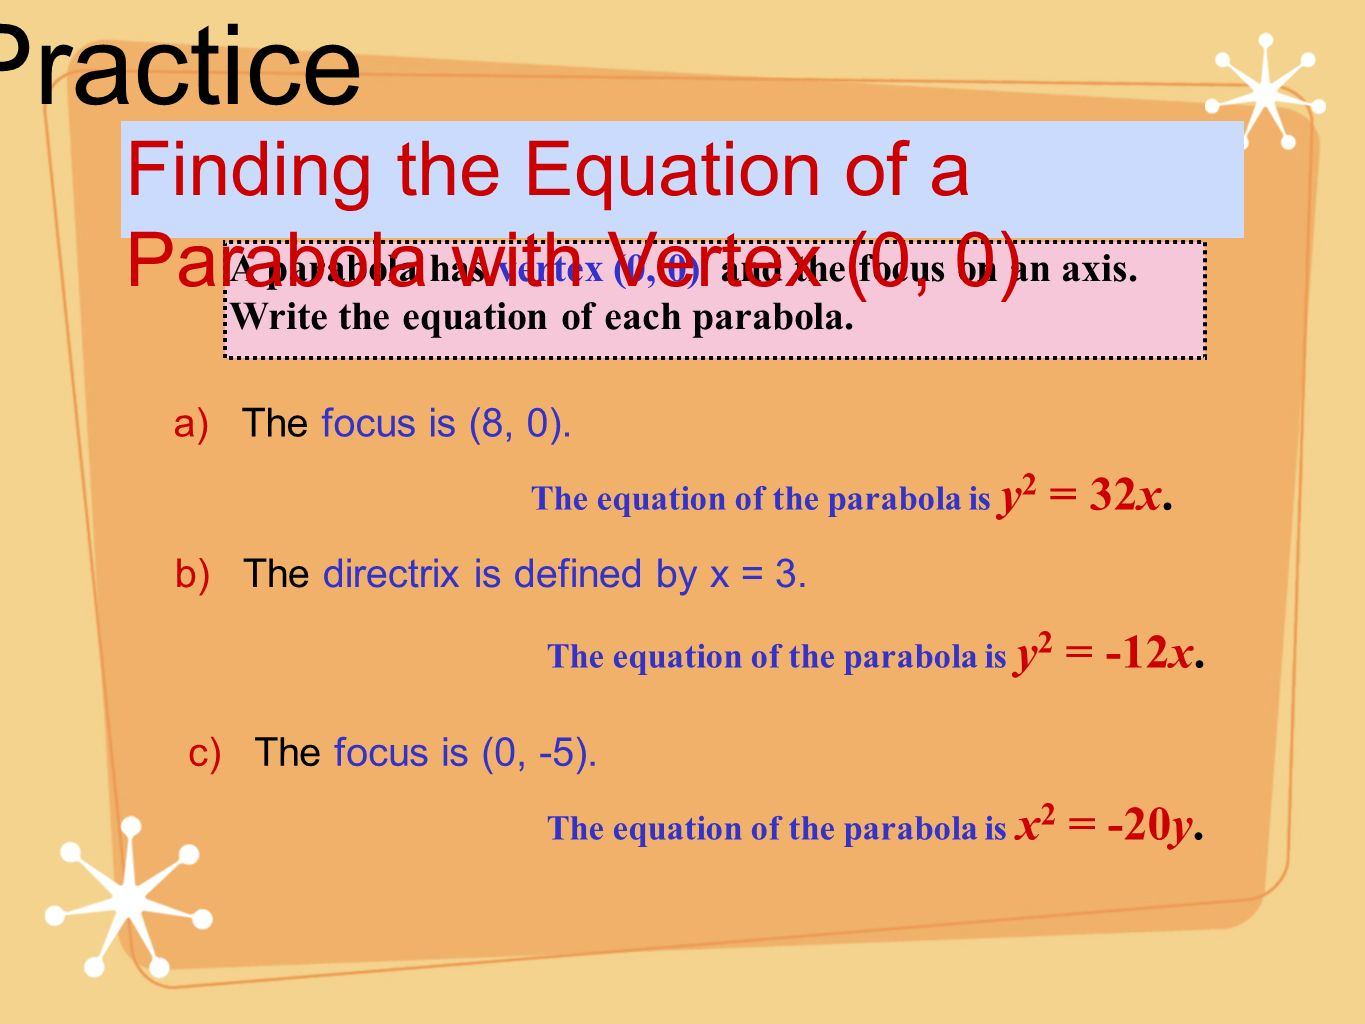 Practice Finding the Equation of a Parabola with Vertex (0, 0)